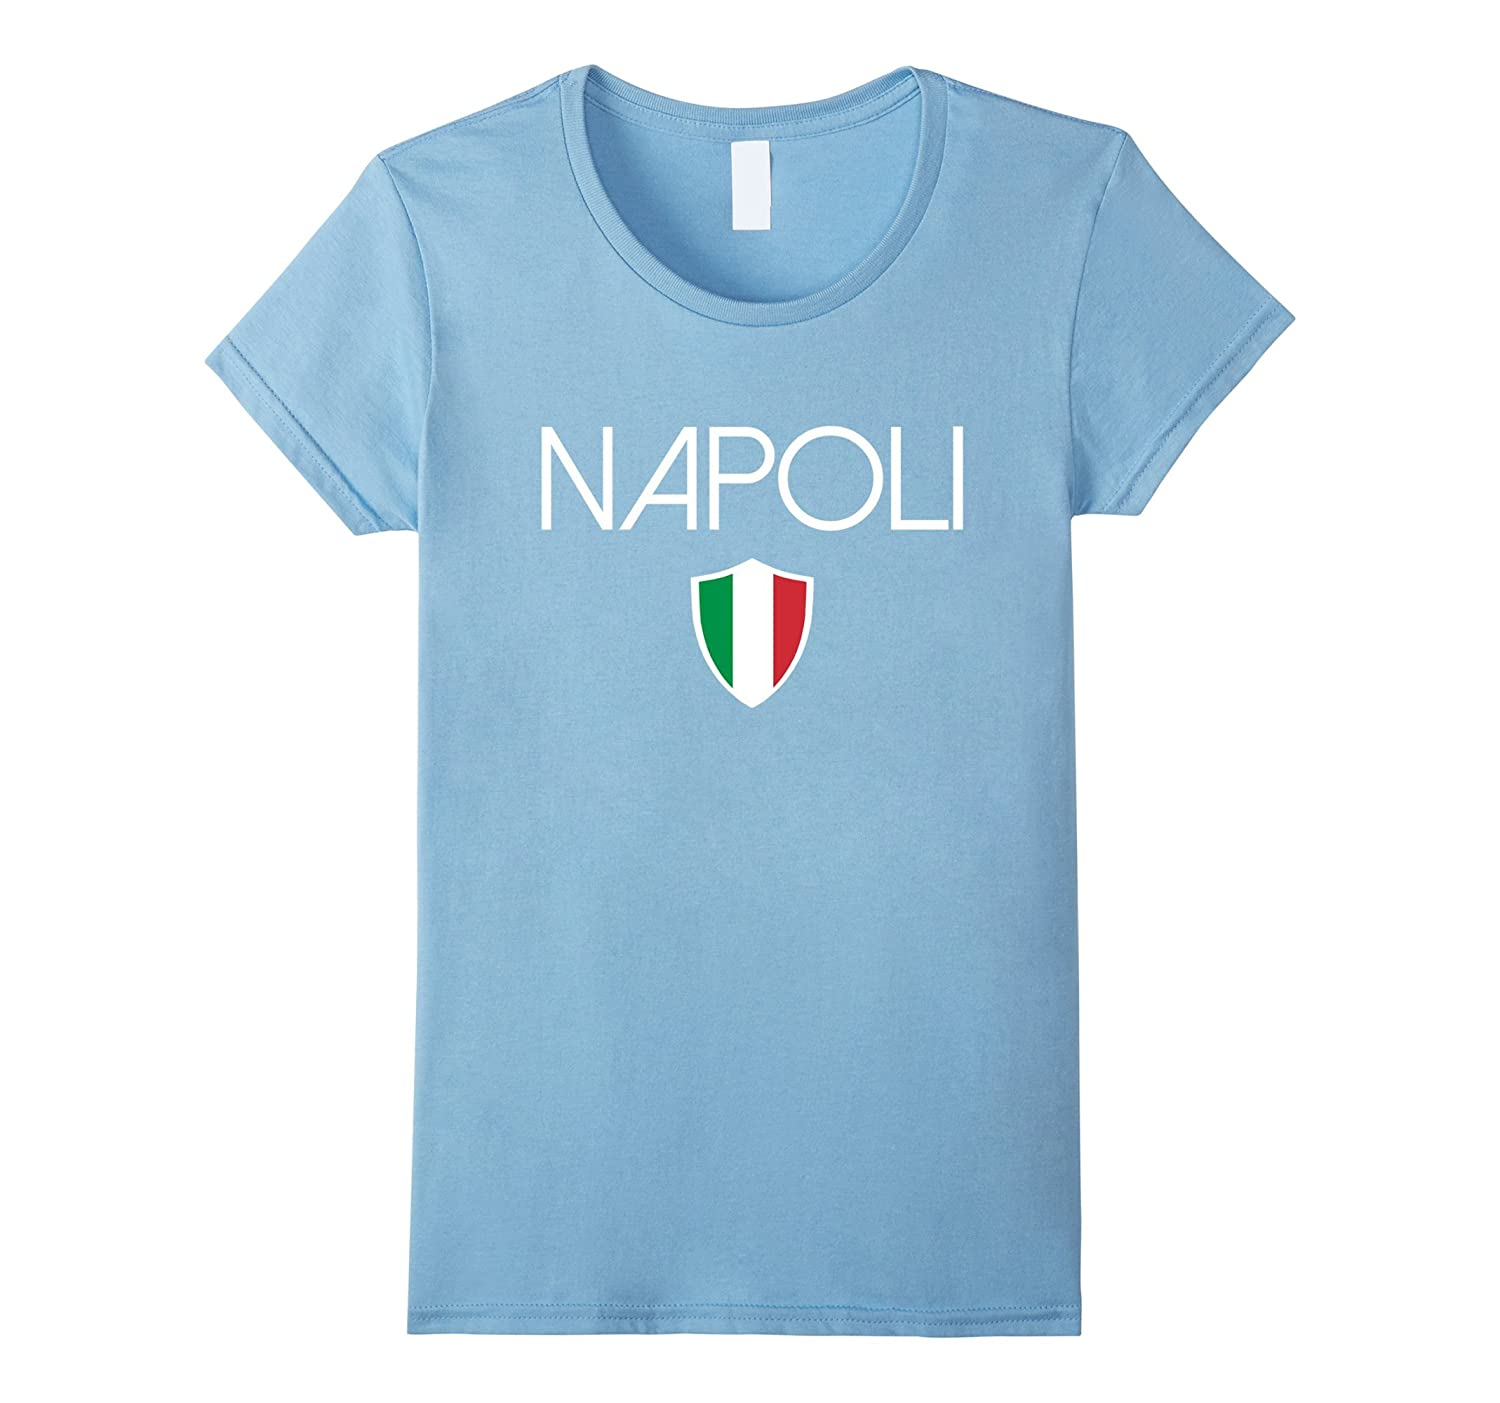 Amazon.com: Napoli T-Shirt Italian flag Naples Italy soccer souvenir tee: Clothing